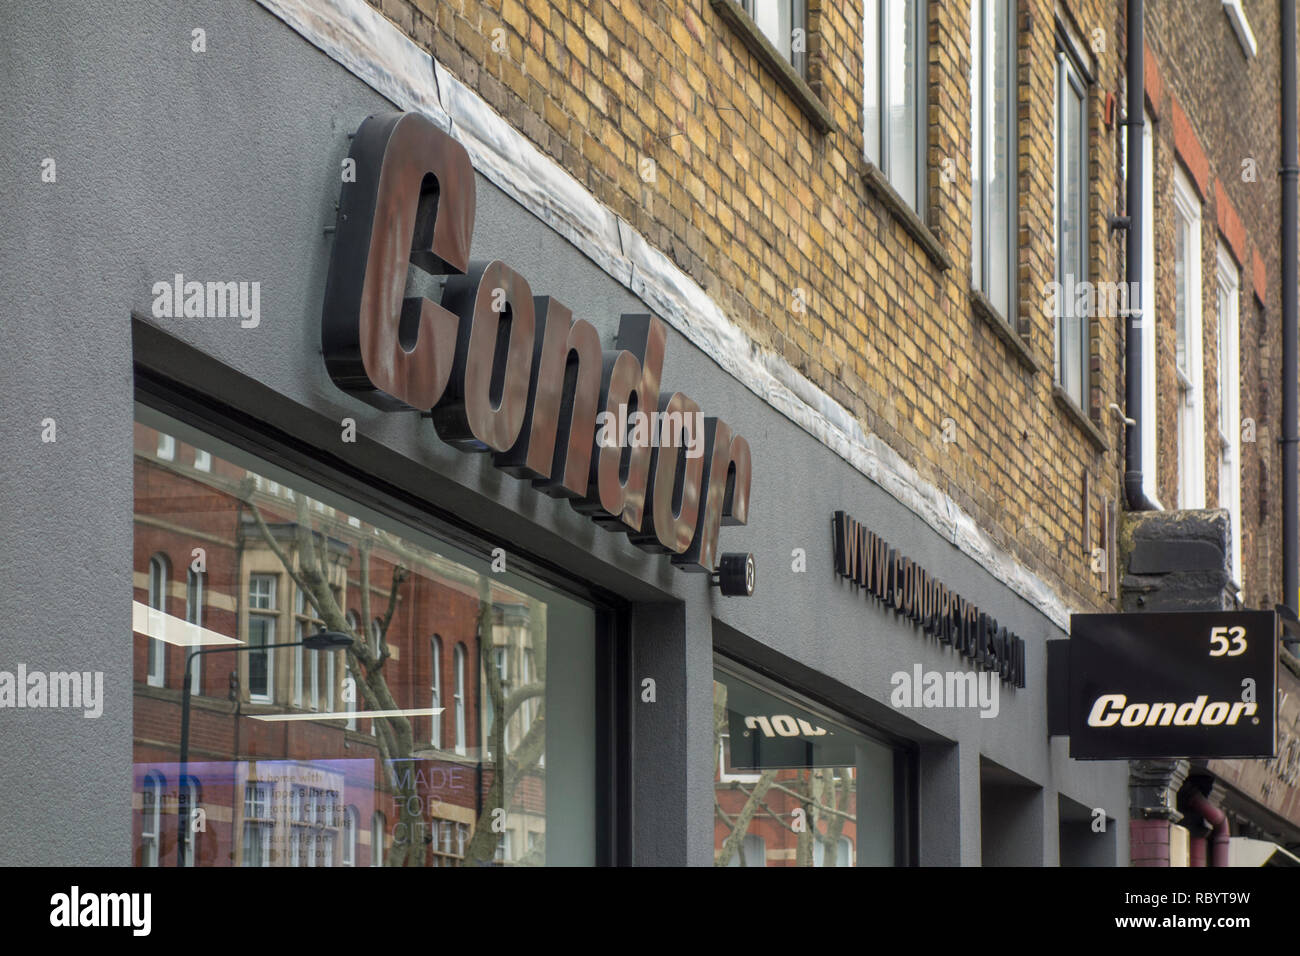 Magasin de vélos Condor à Londres, Royaume-Uni Photo Stock